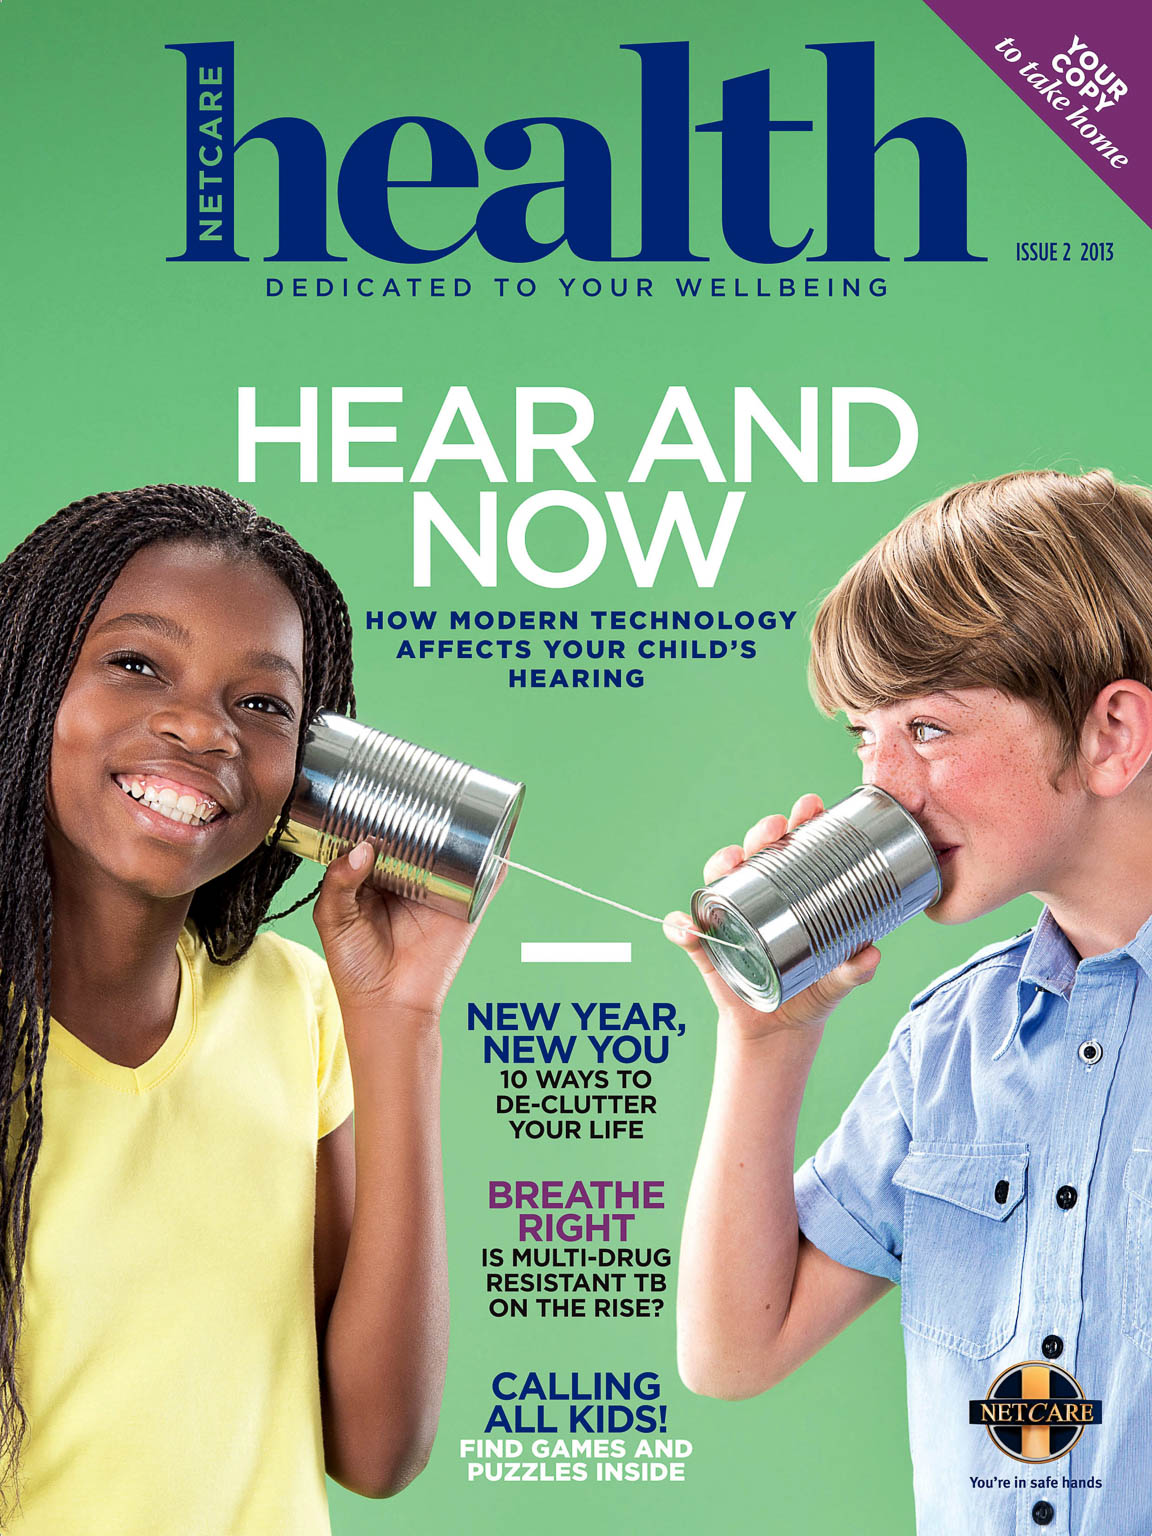 Netcare Health - Hear And Now